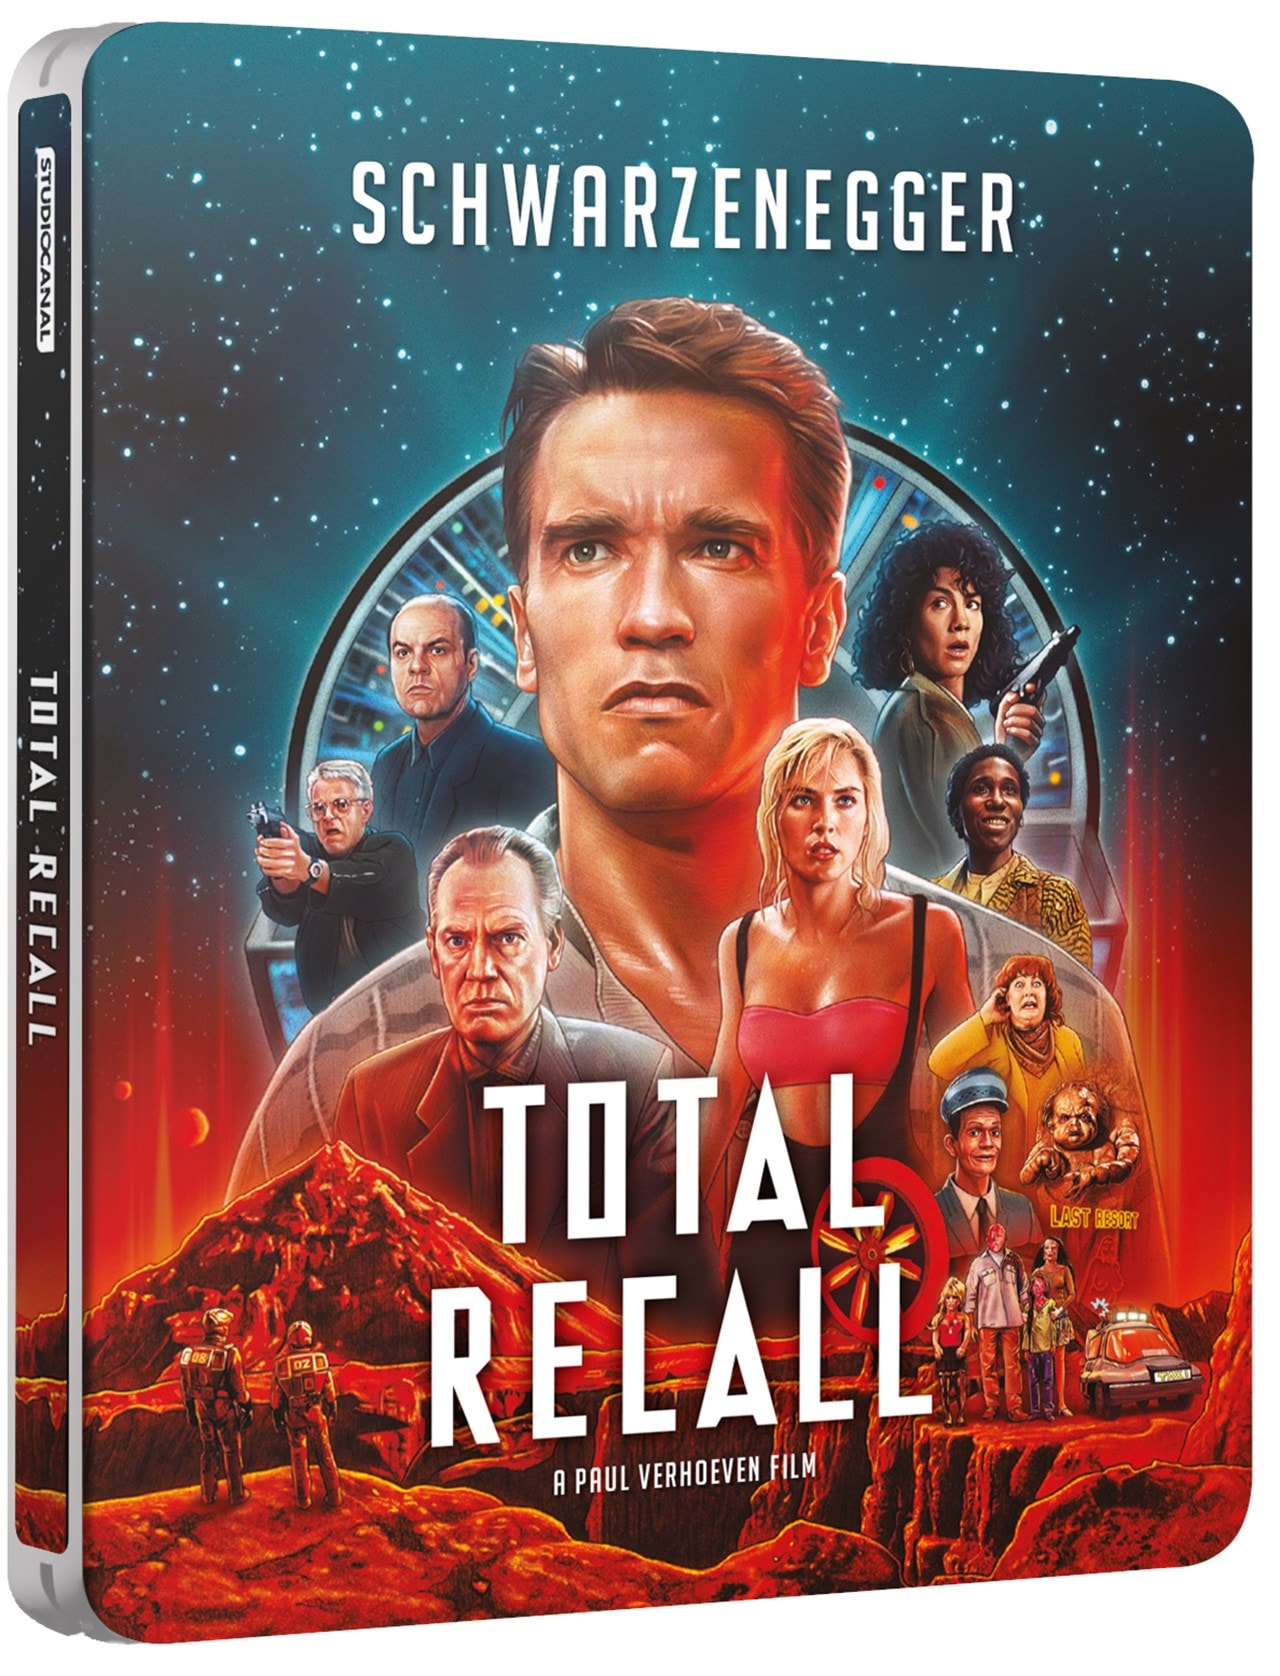 Total Recall 30th Anniversary 4k Ultra Hd Limited Edition Steelbook 4k Ultra Hd Blu Ray Free Shipping Over 20 Hmv Store